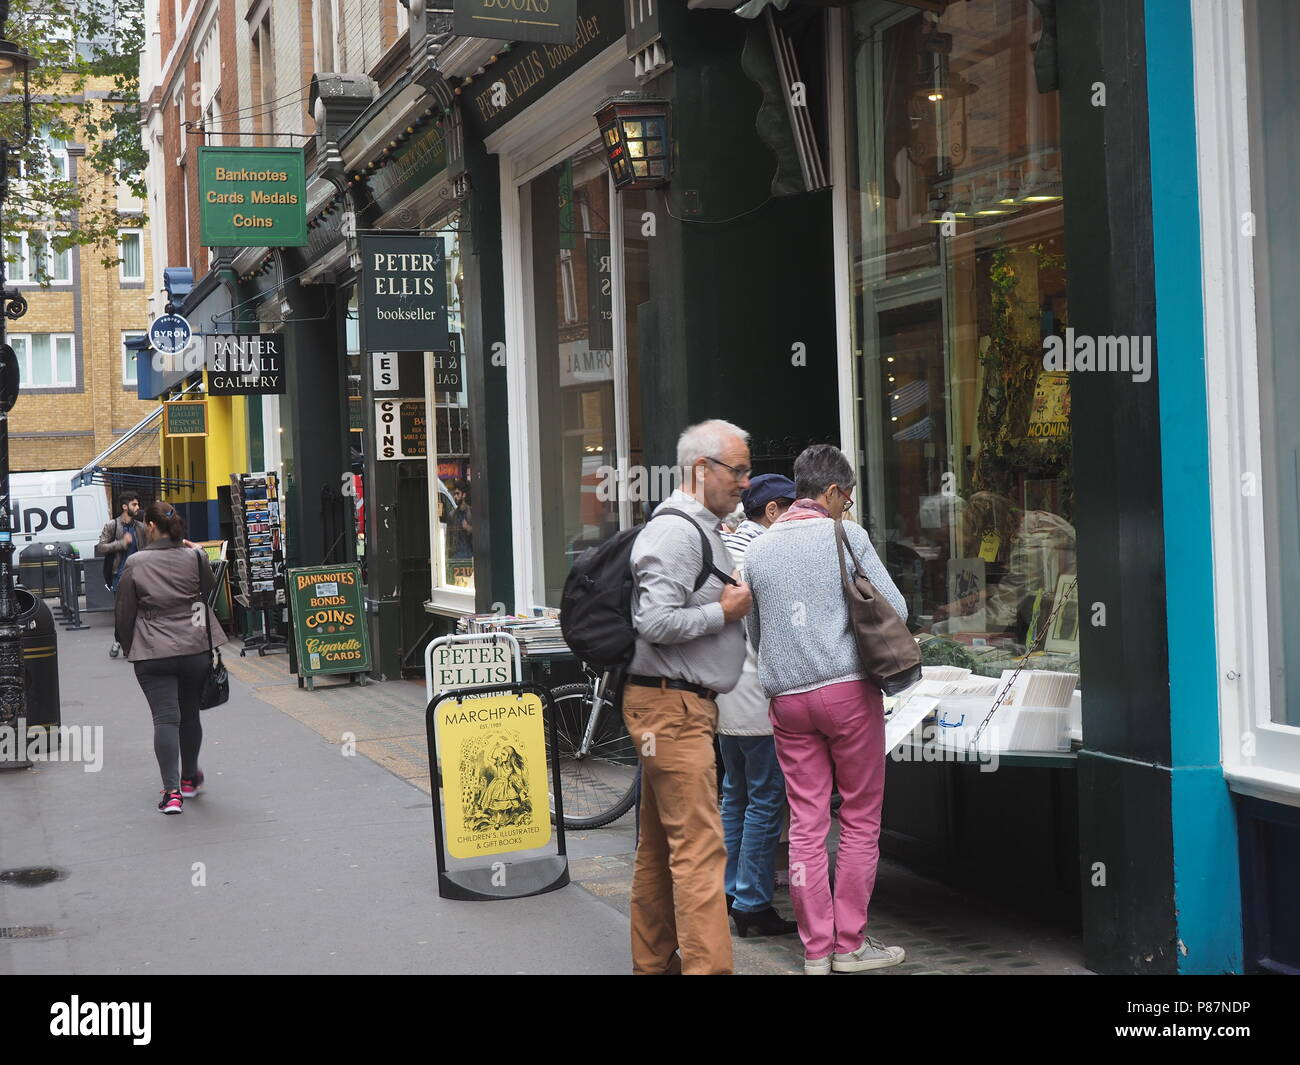 Cecil Court, a pedestrian only alley with shops selling collectors' items, shopping - Stock Image